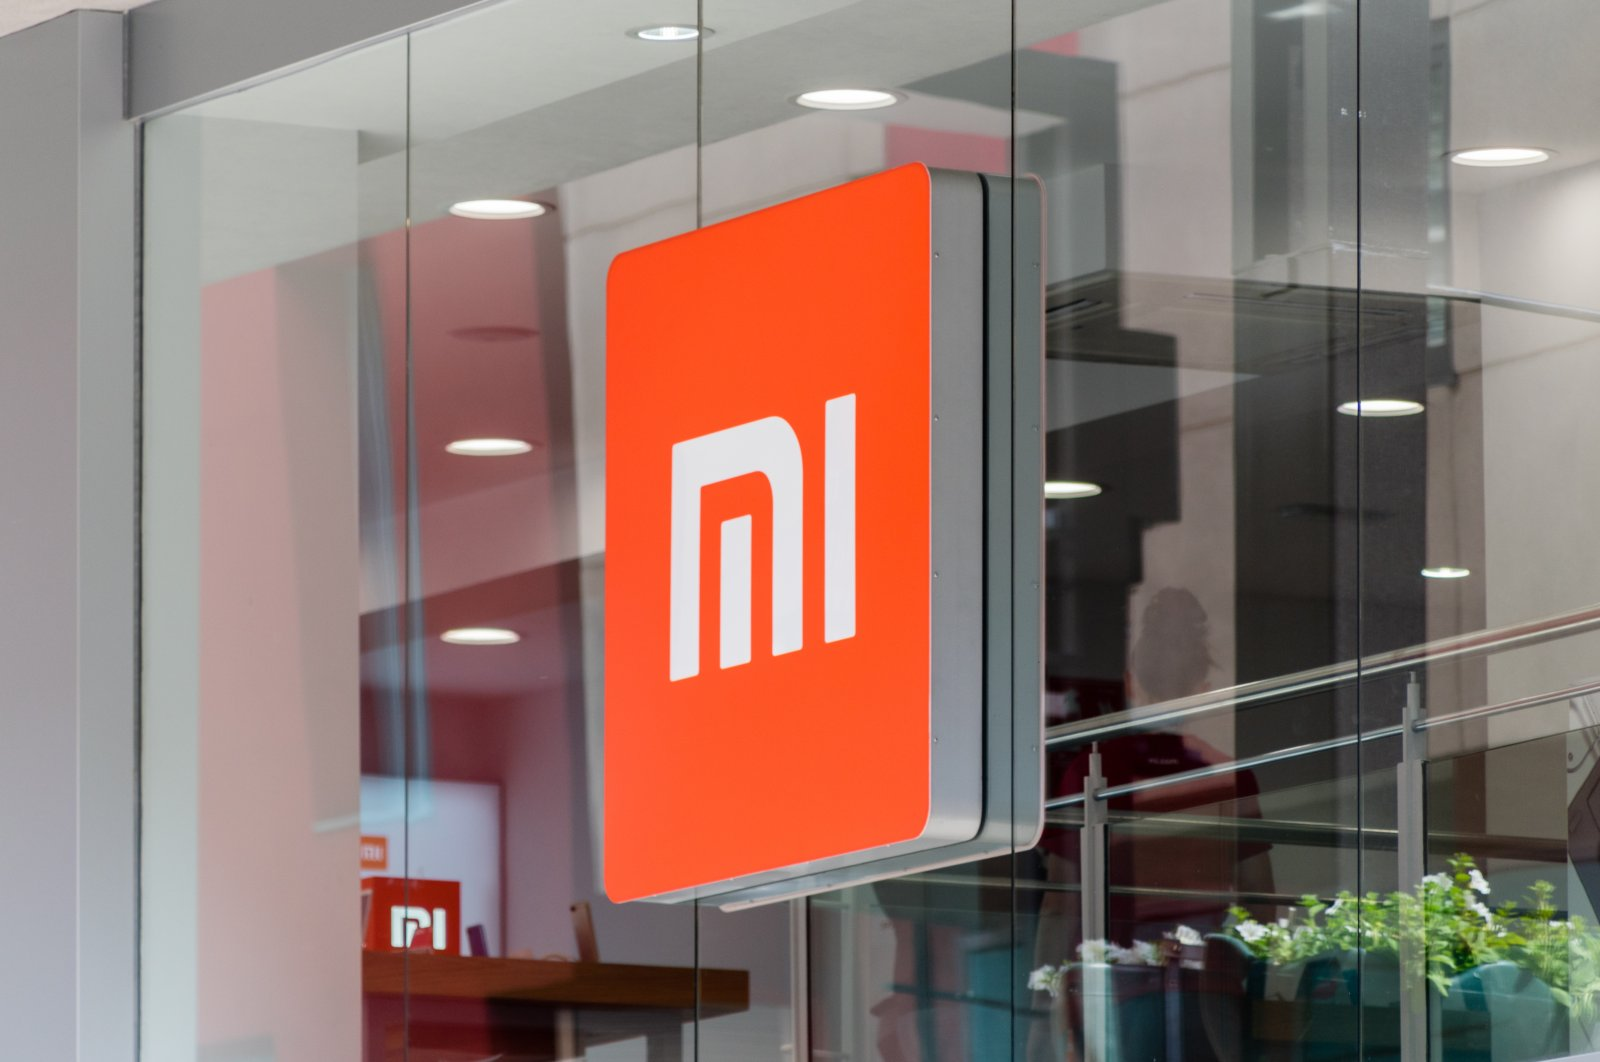 The Xiaomi logo on a retail store in Andorra, June 3, 2019. (Shutterstock Photo)